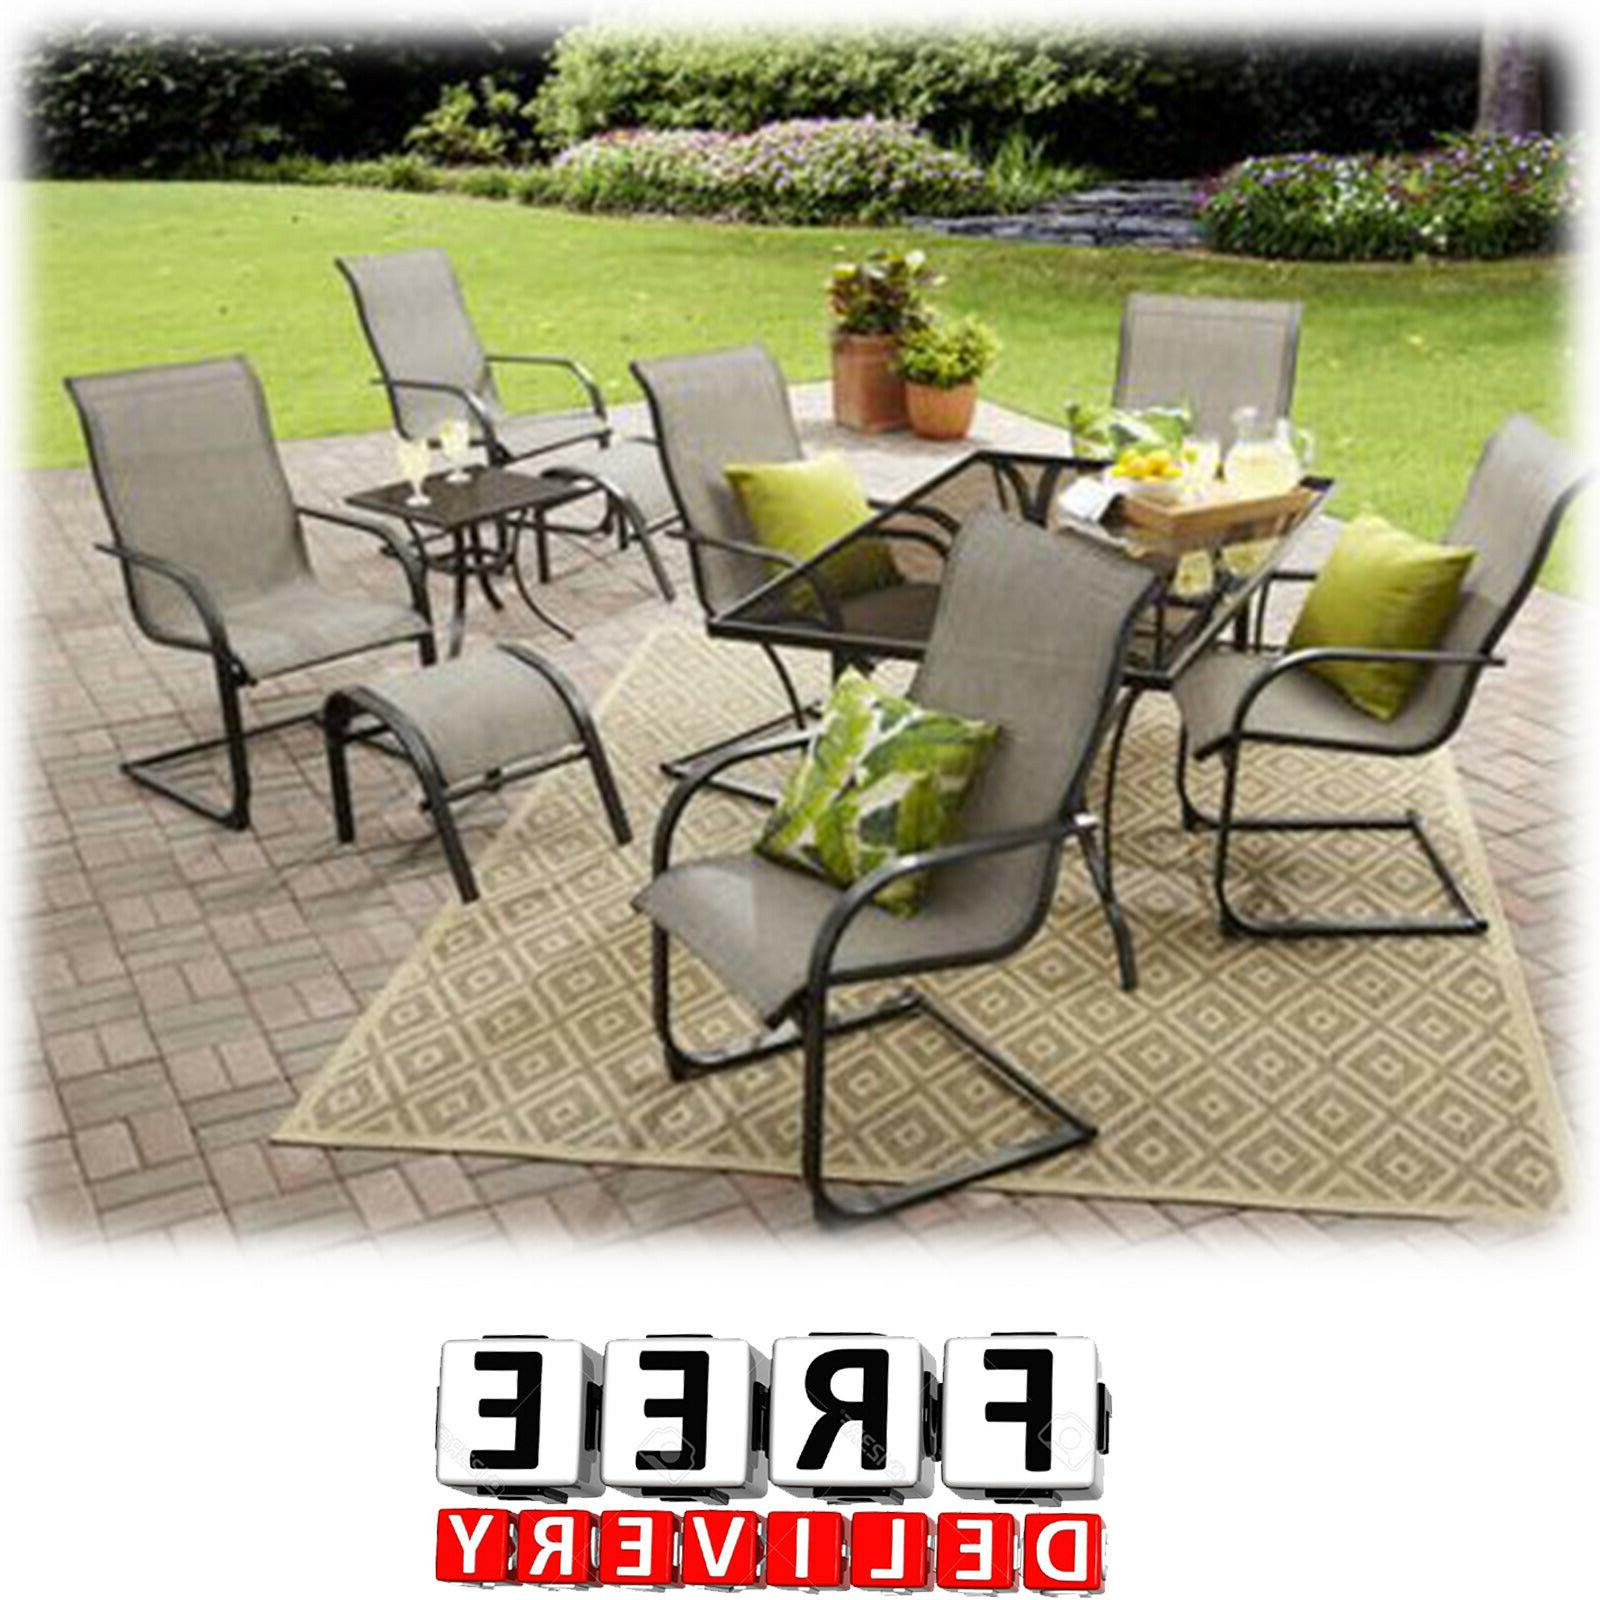 Outdoor Patio Dining Furniture Set 10 Piece Table Chairs Ott